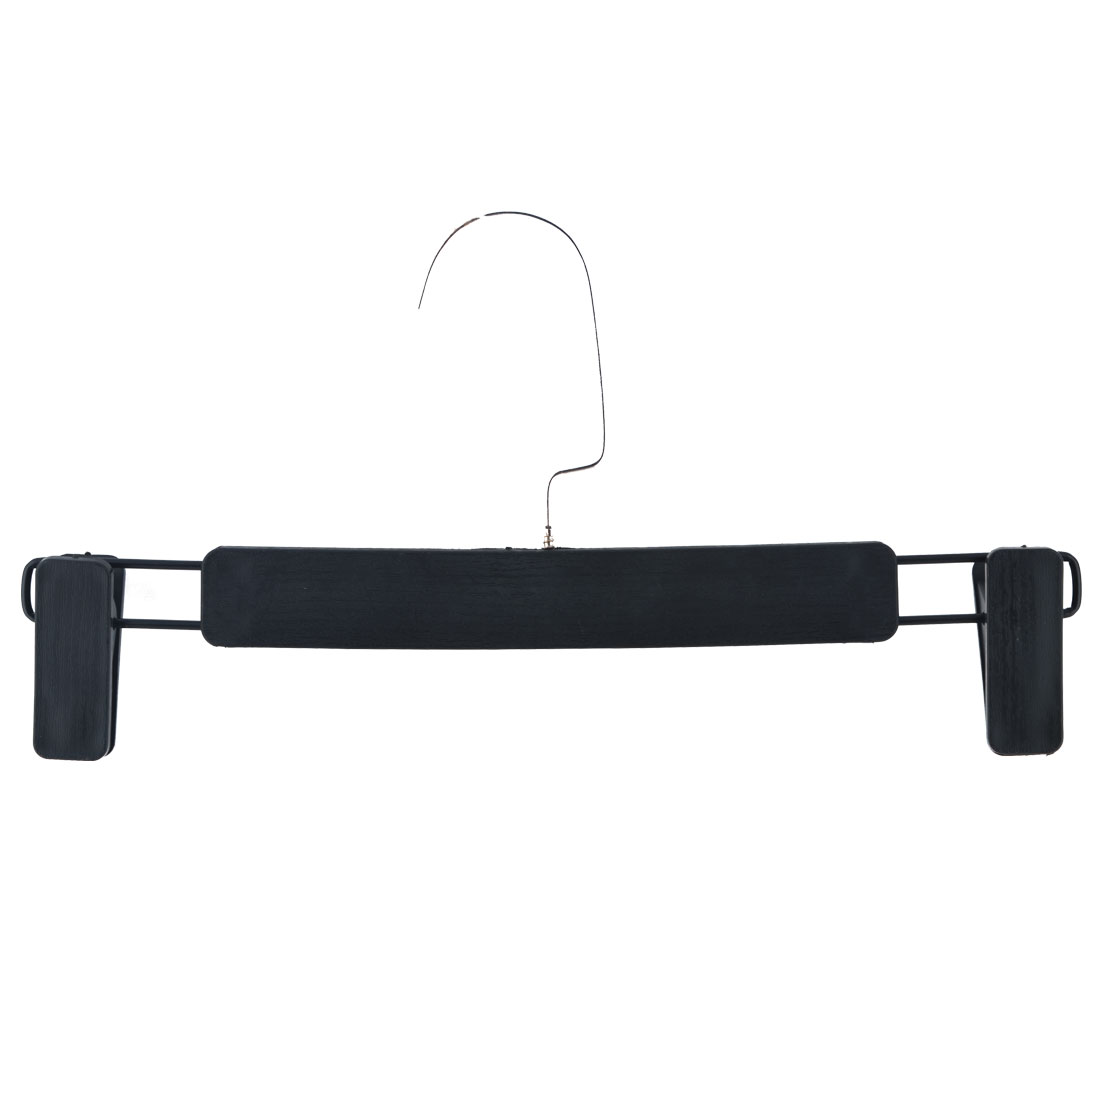 Household Wardrobe Plastic Double Clips Wood-like Suits Pants Clothes Hanger Black